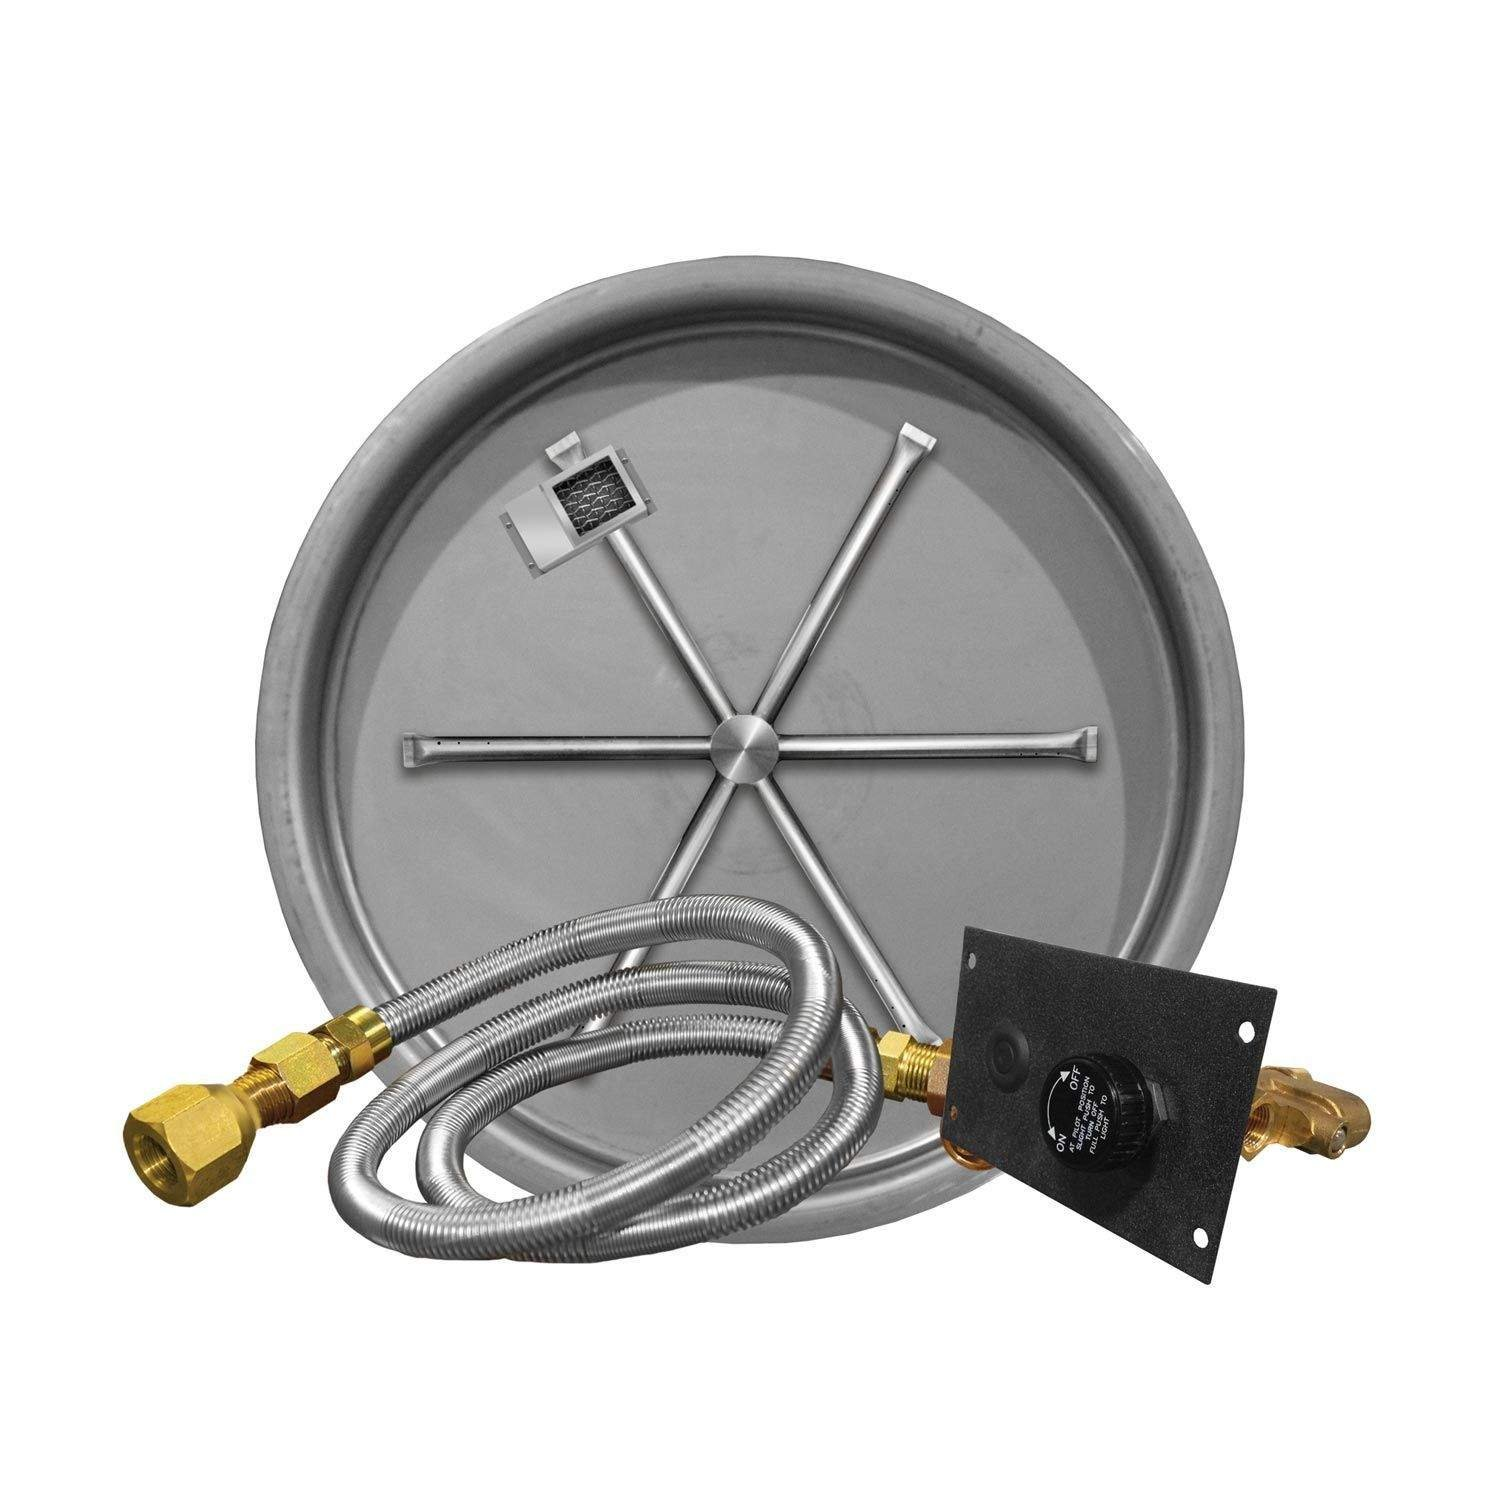 Firegear FPB-19RBSTMS-N UL Listed Match Light Gas Fire Pit Burner Kit with Flame Sensing, Round Bowl Pan, Natural Gas, 19-inch by Firegear